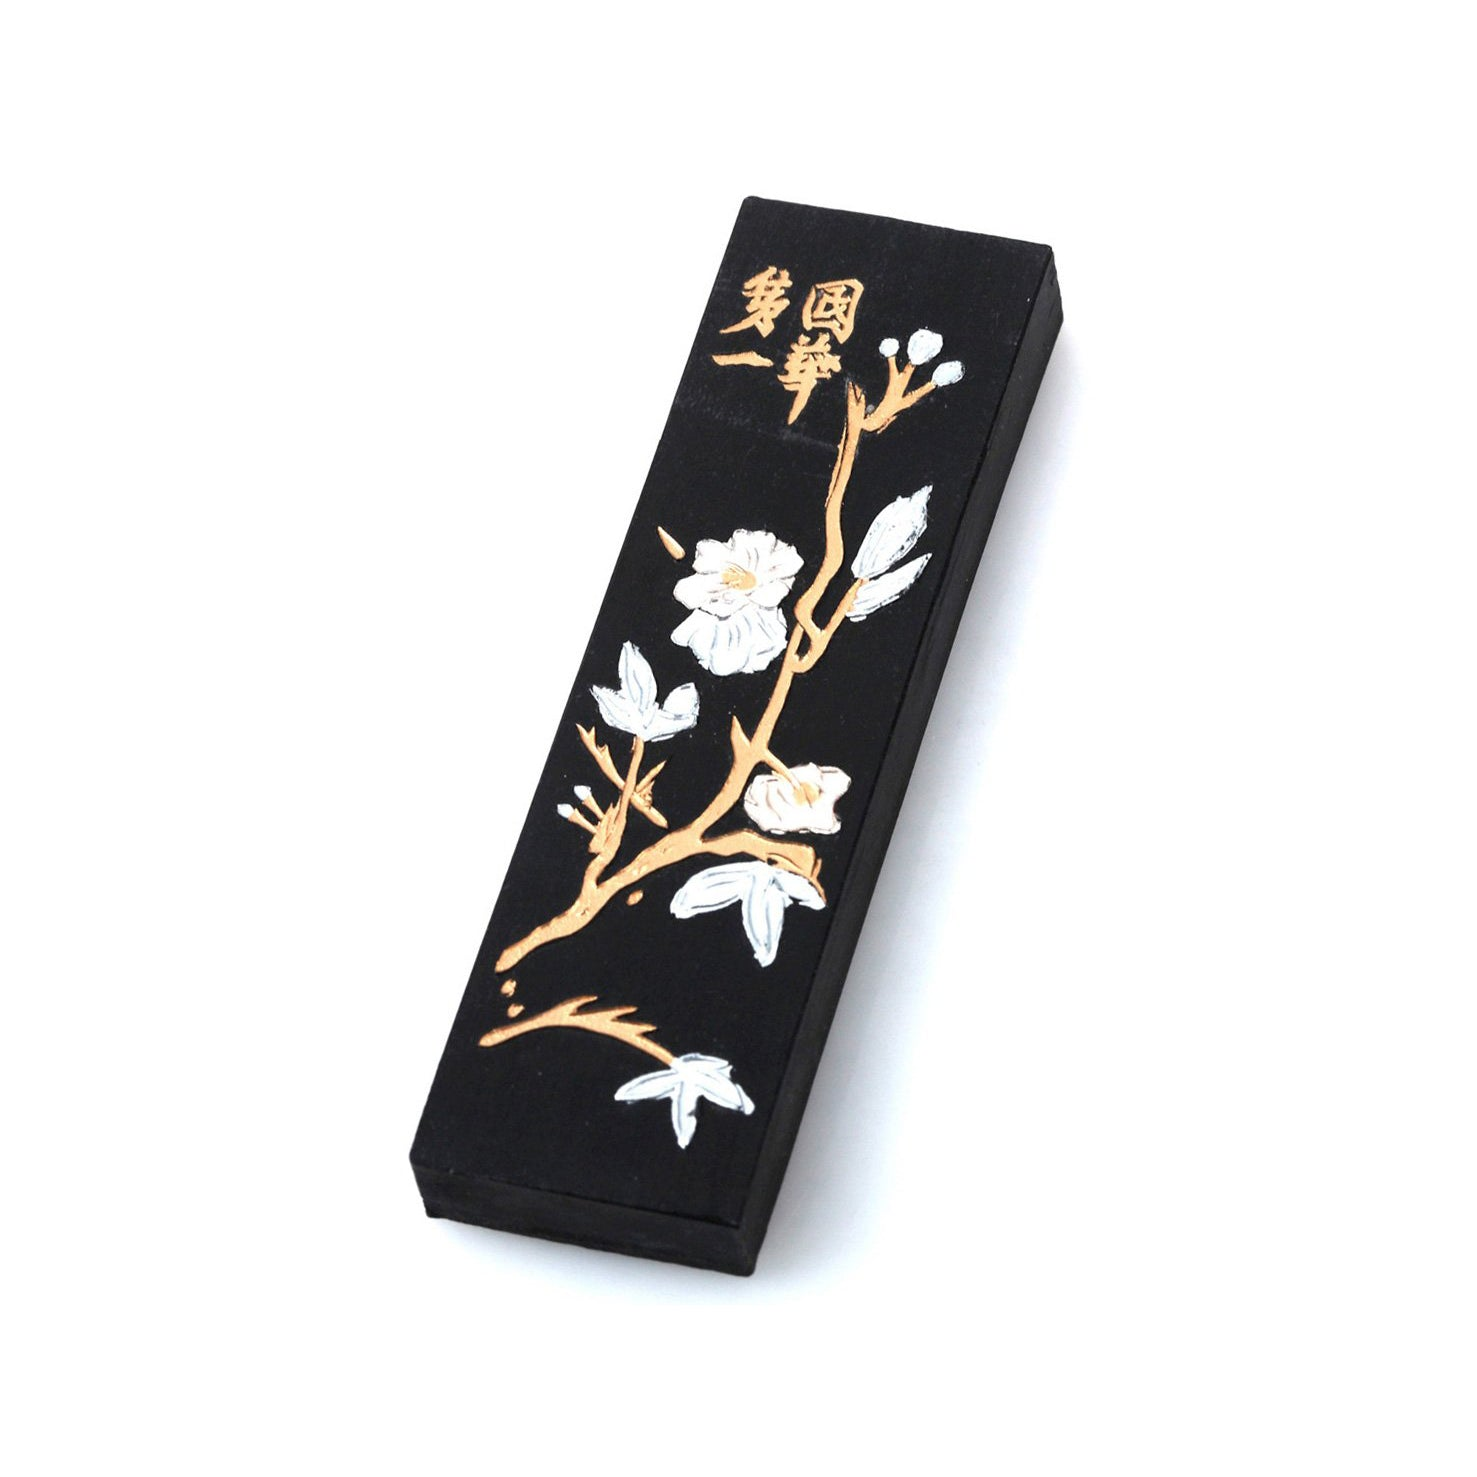 Black Japanes / Chinese ink stick for sumi and calligraphy, nicely decorated with white plum tree blossoms on golden branches and golden decorative Chinese lettering.